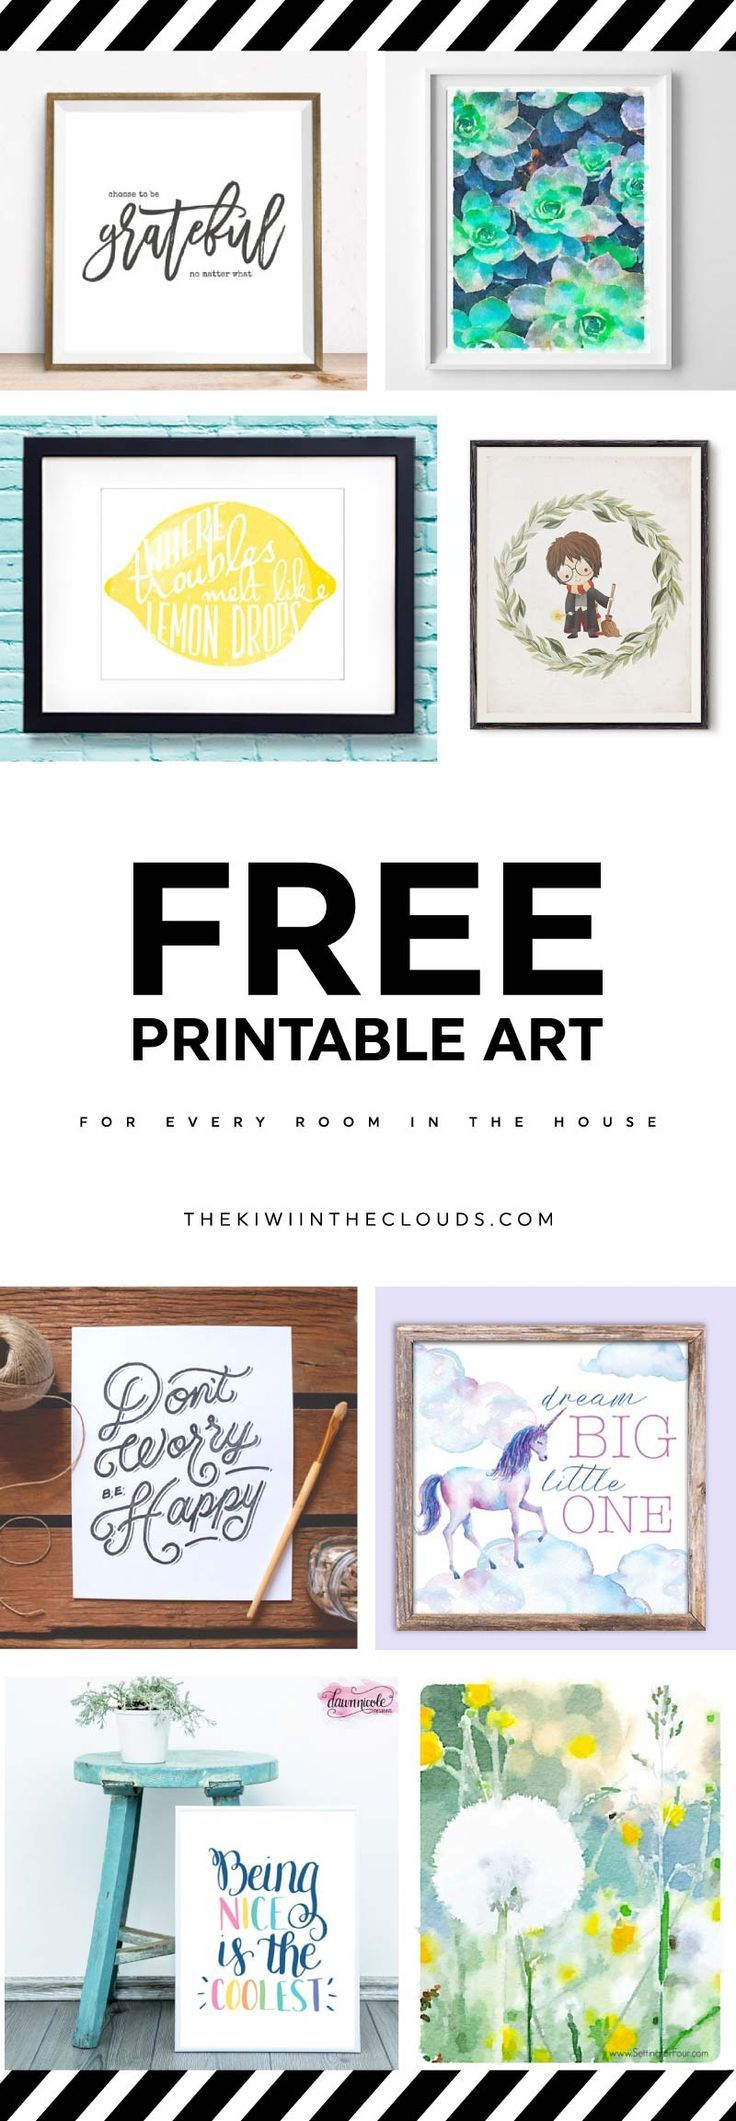 free printable art for the home | gallery wall images | inspirational art